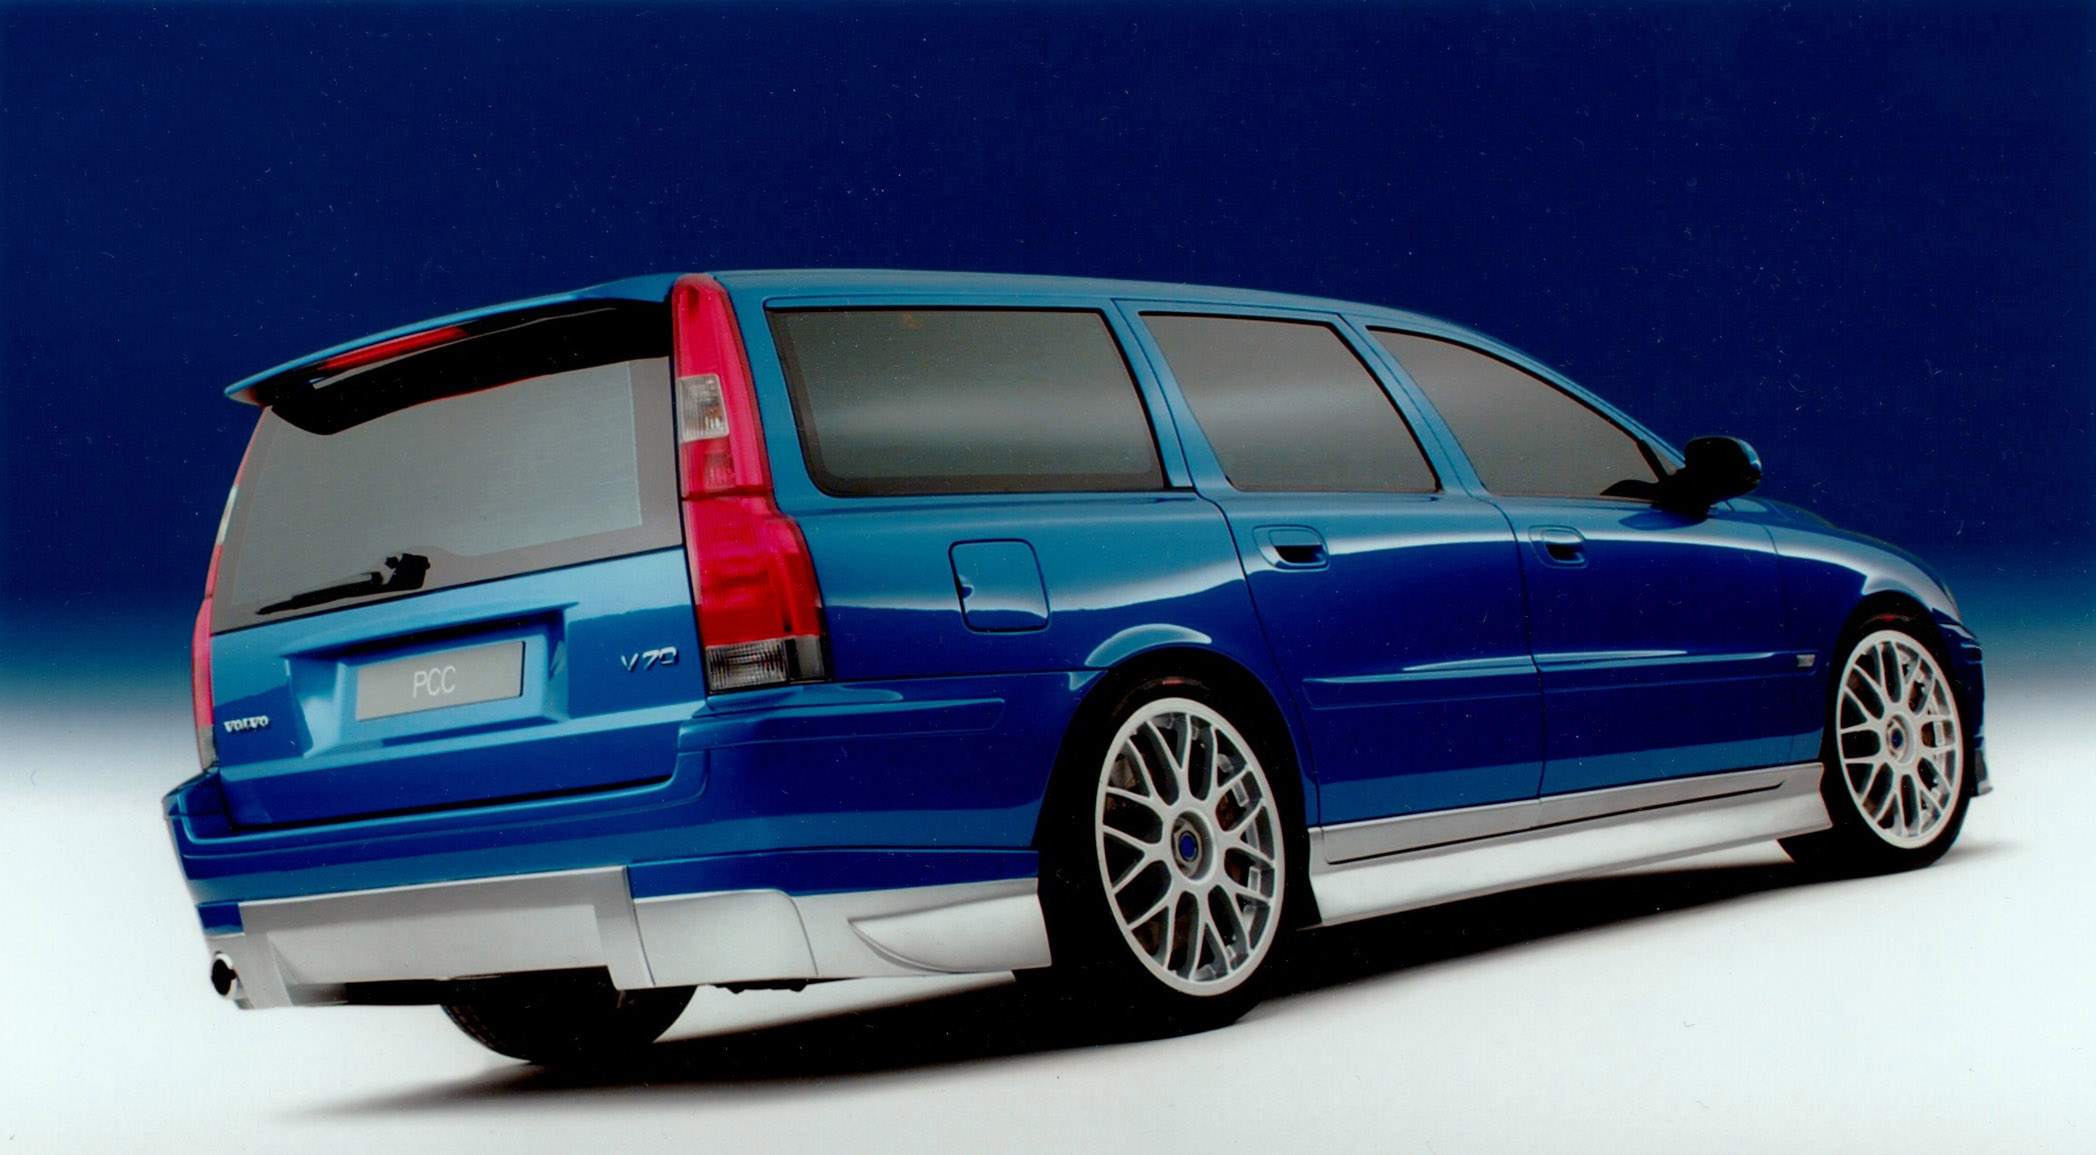 volvo v70 wiring diagram 2007 the black cat plot heated seat best library s40 fuel pump location free engine image for s70